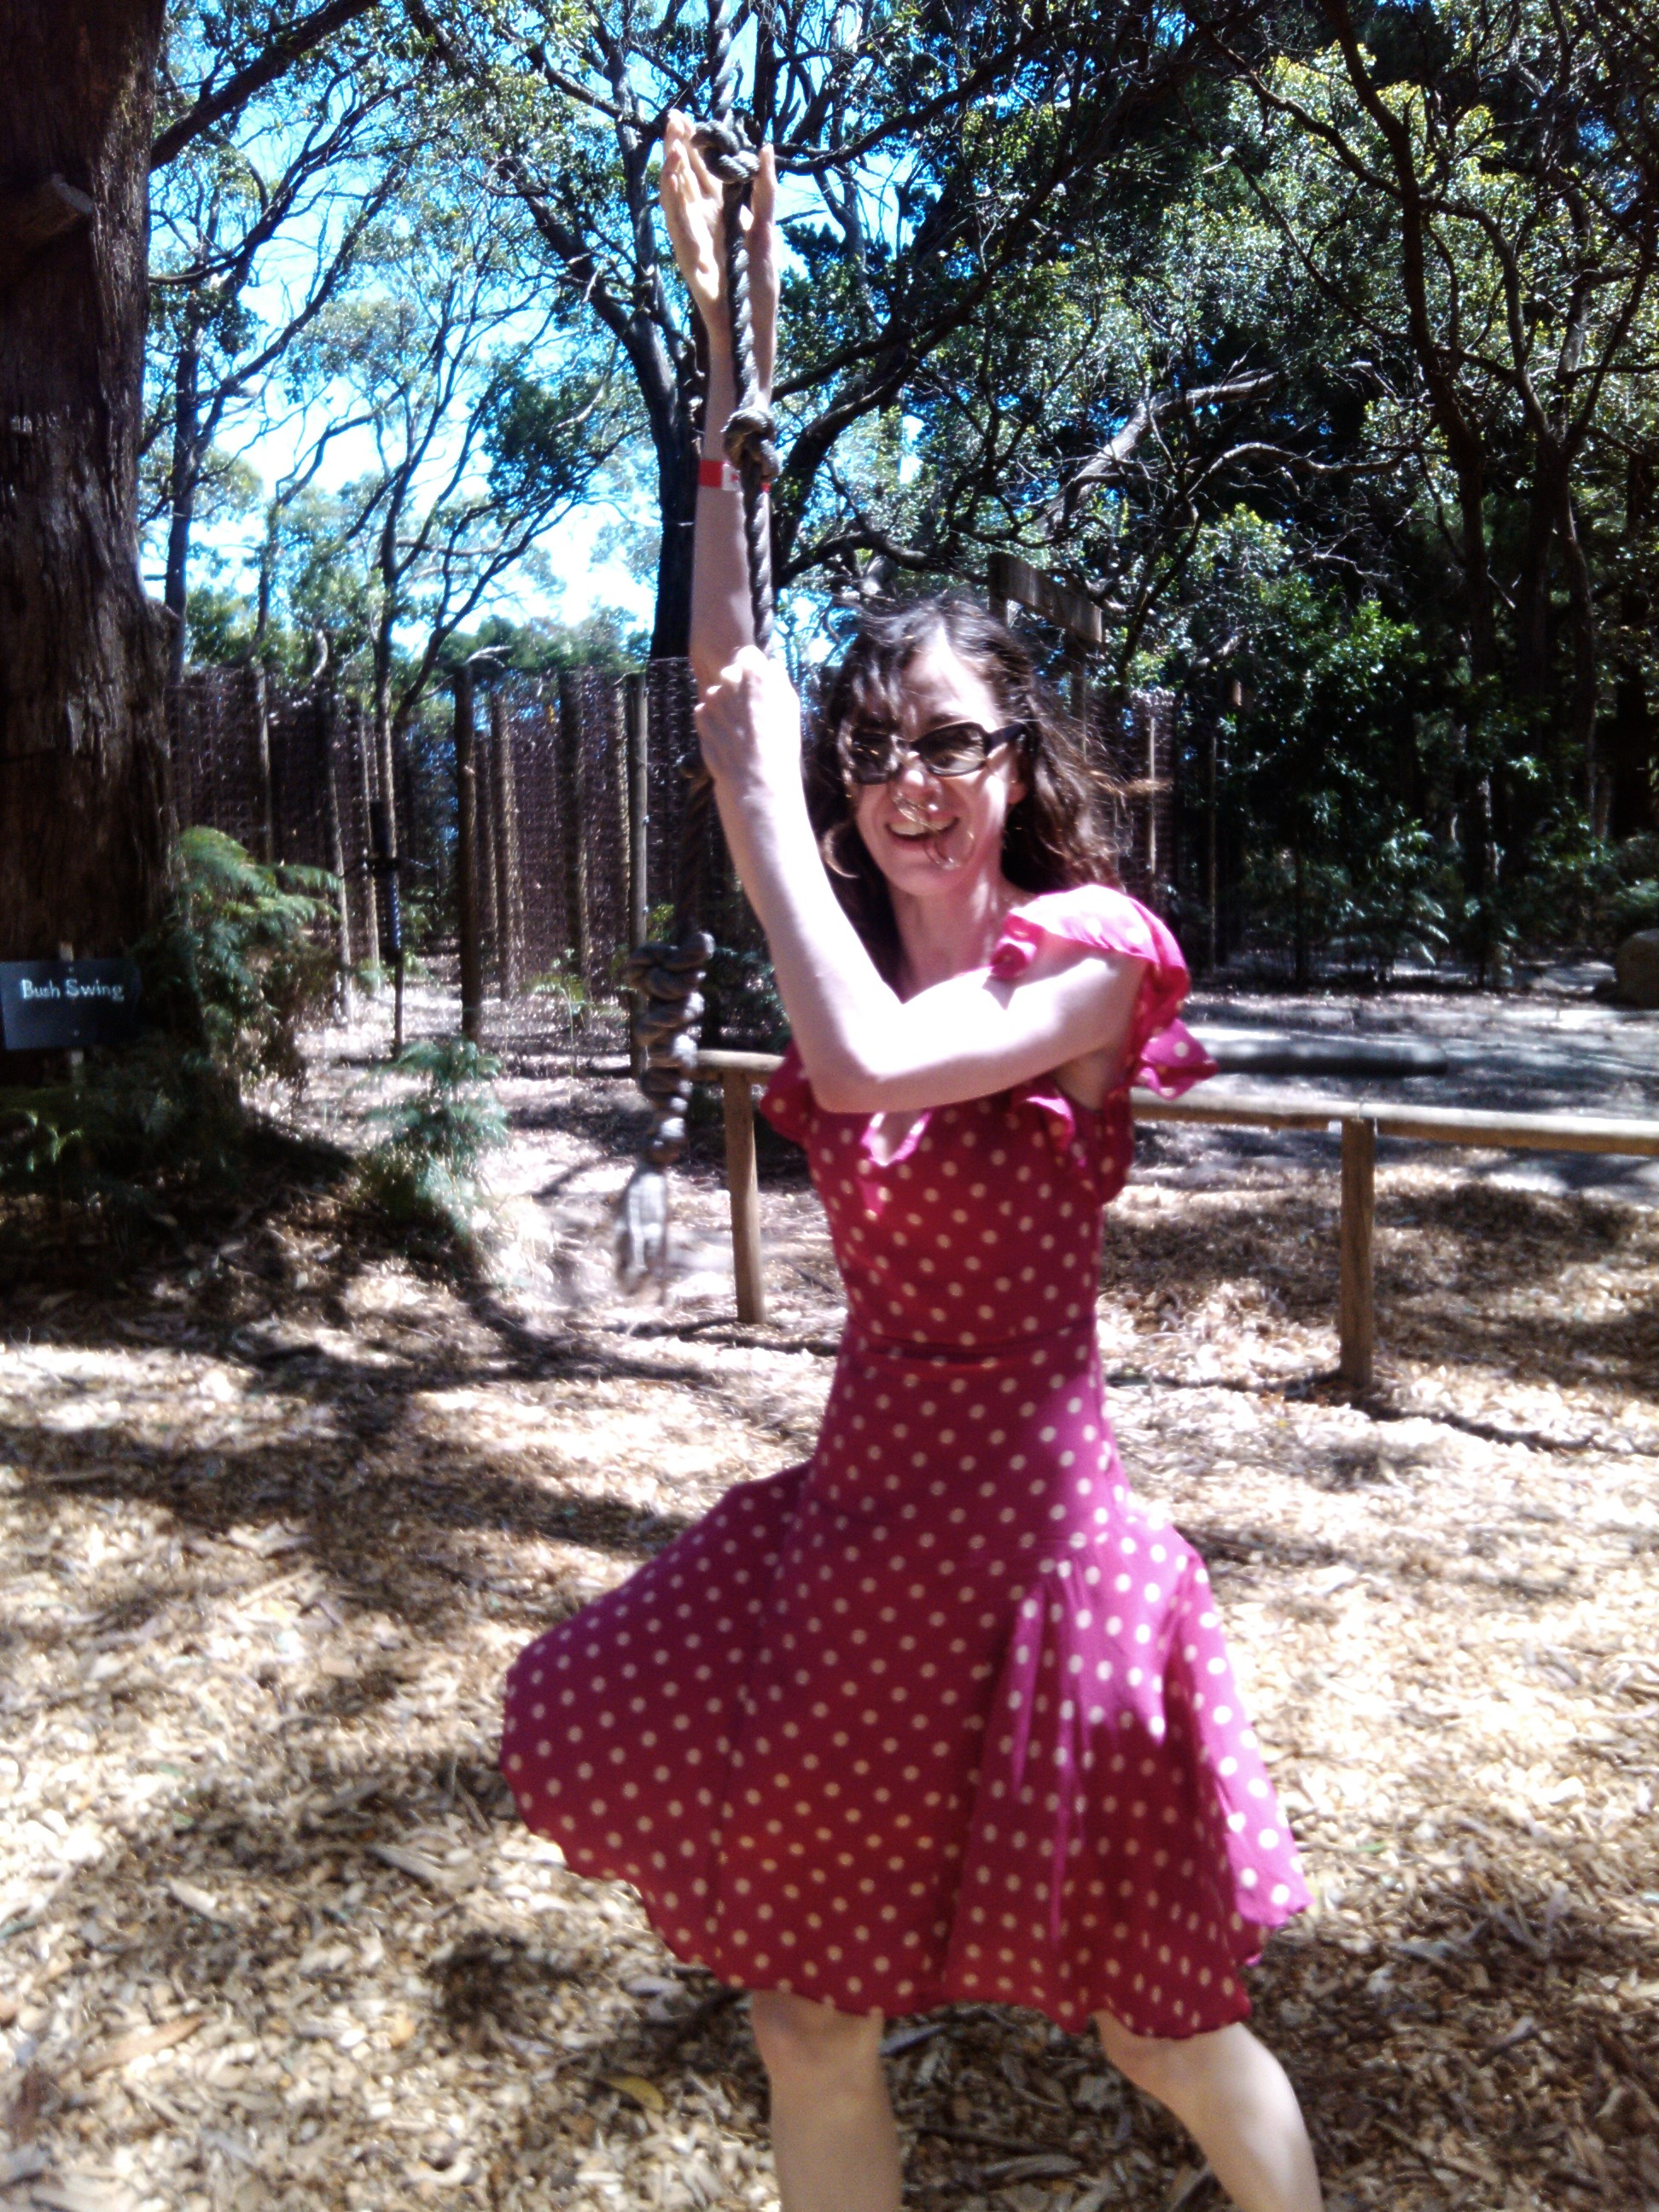 Louise Osborne playing on rope in the bush